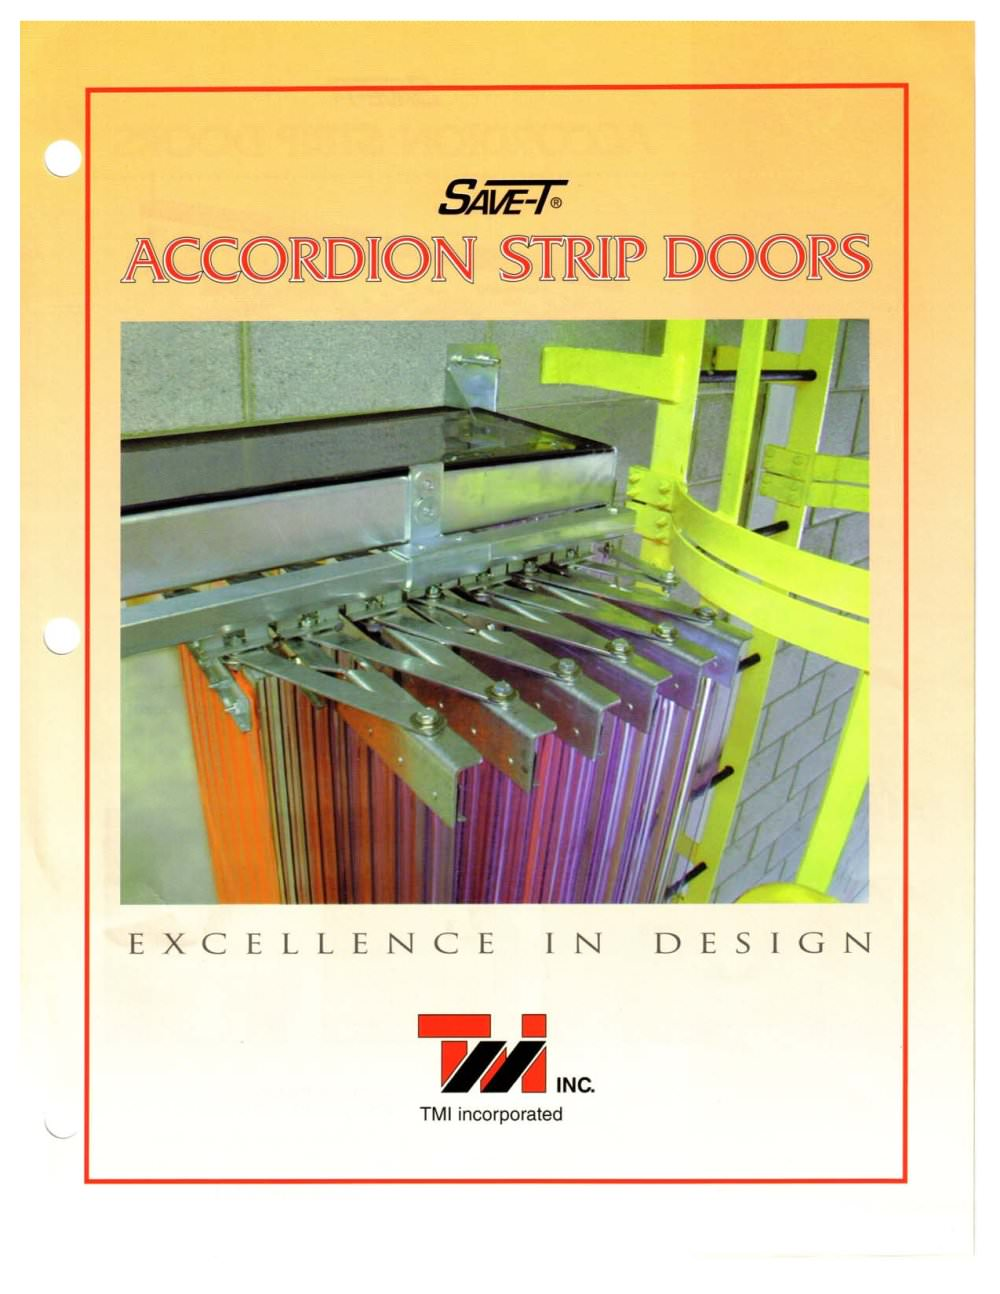 TMI Accordion Strip Door Catalogue - 1 / 2 Pages  sc 1 st  Catalogues Directindustry & TMI Accordion Strip Door Catalogue - TMI LLC - PDF Catalogue ...